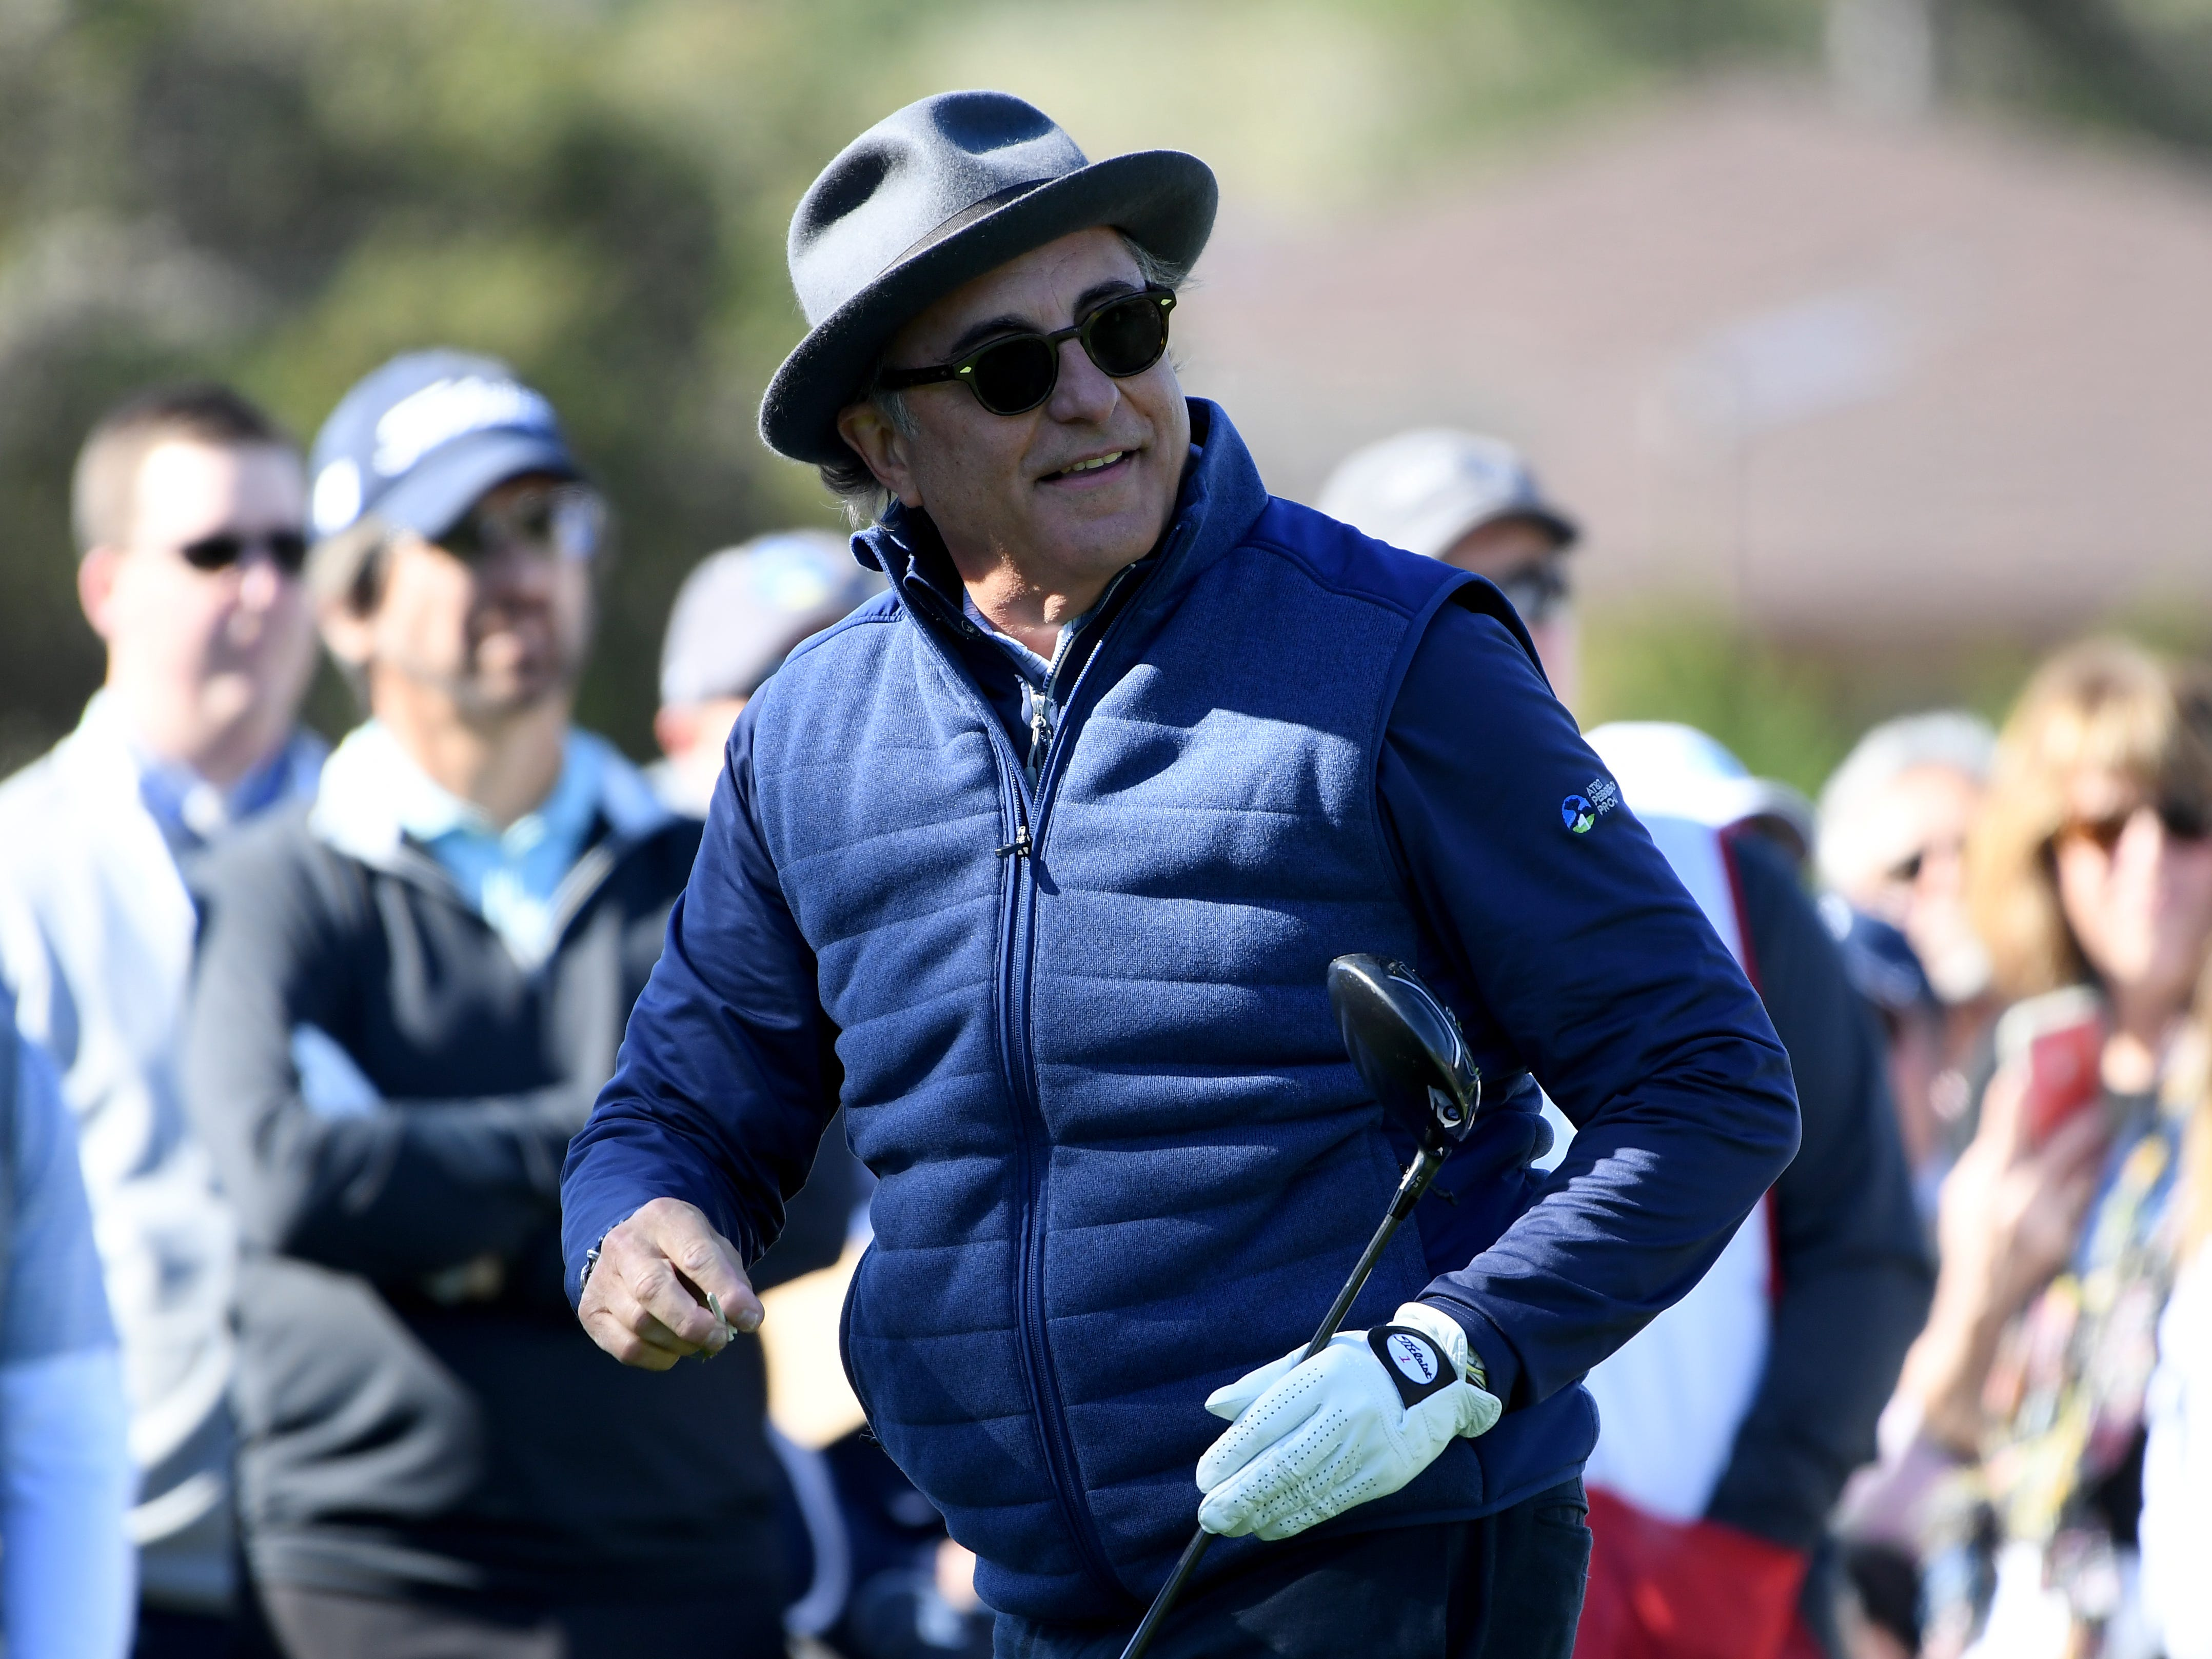 Andy Garcia reacts to his shot on the first tee during the 3M Celebrity Challenge at the AT&T Pebble Beach Pro-Am.